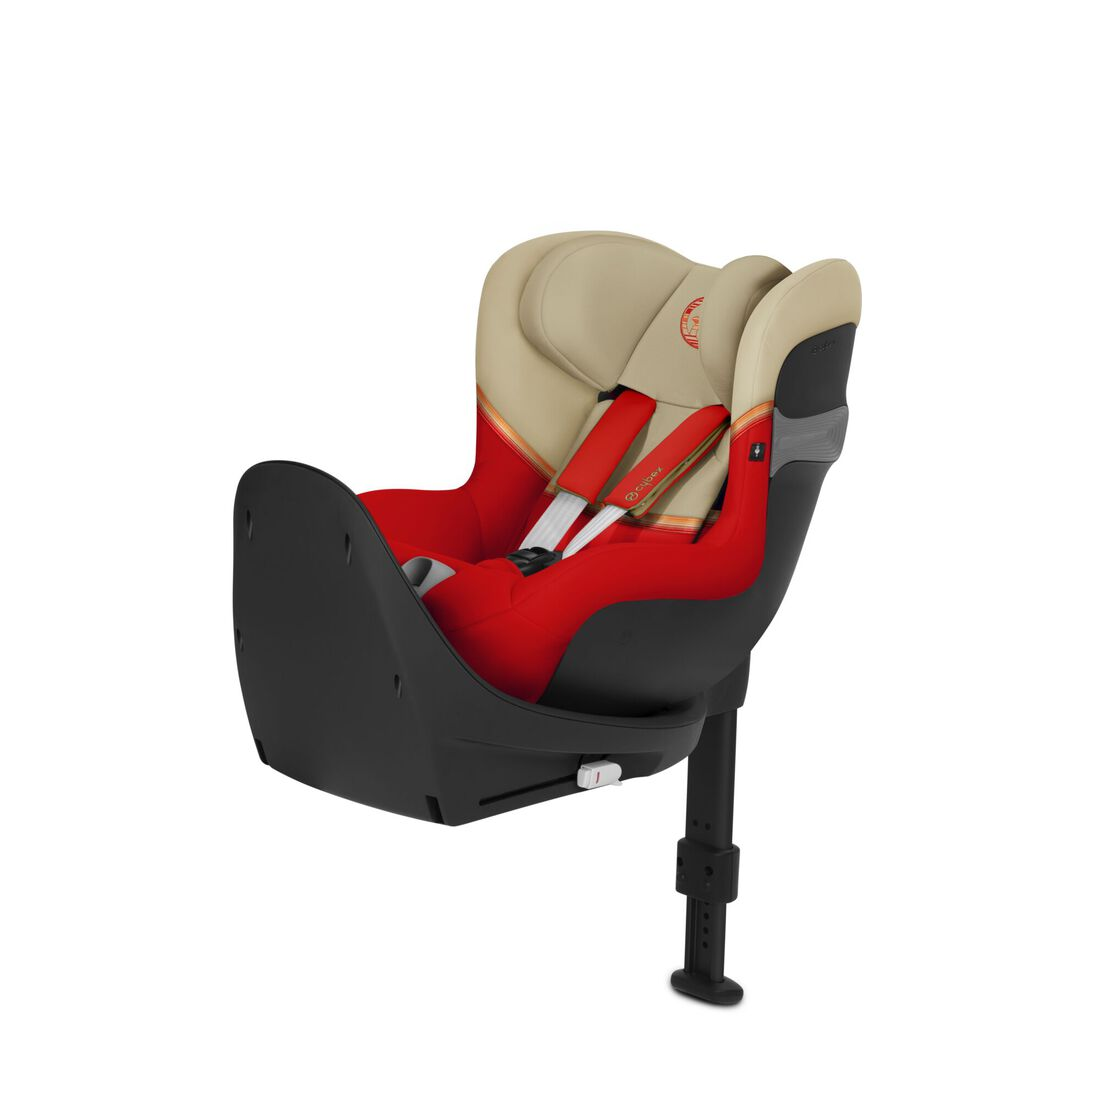 CYBEX Sirona S2 i-Size - Autumn Gold in Autumn Gold large image number 1